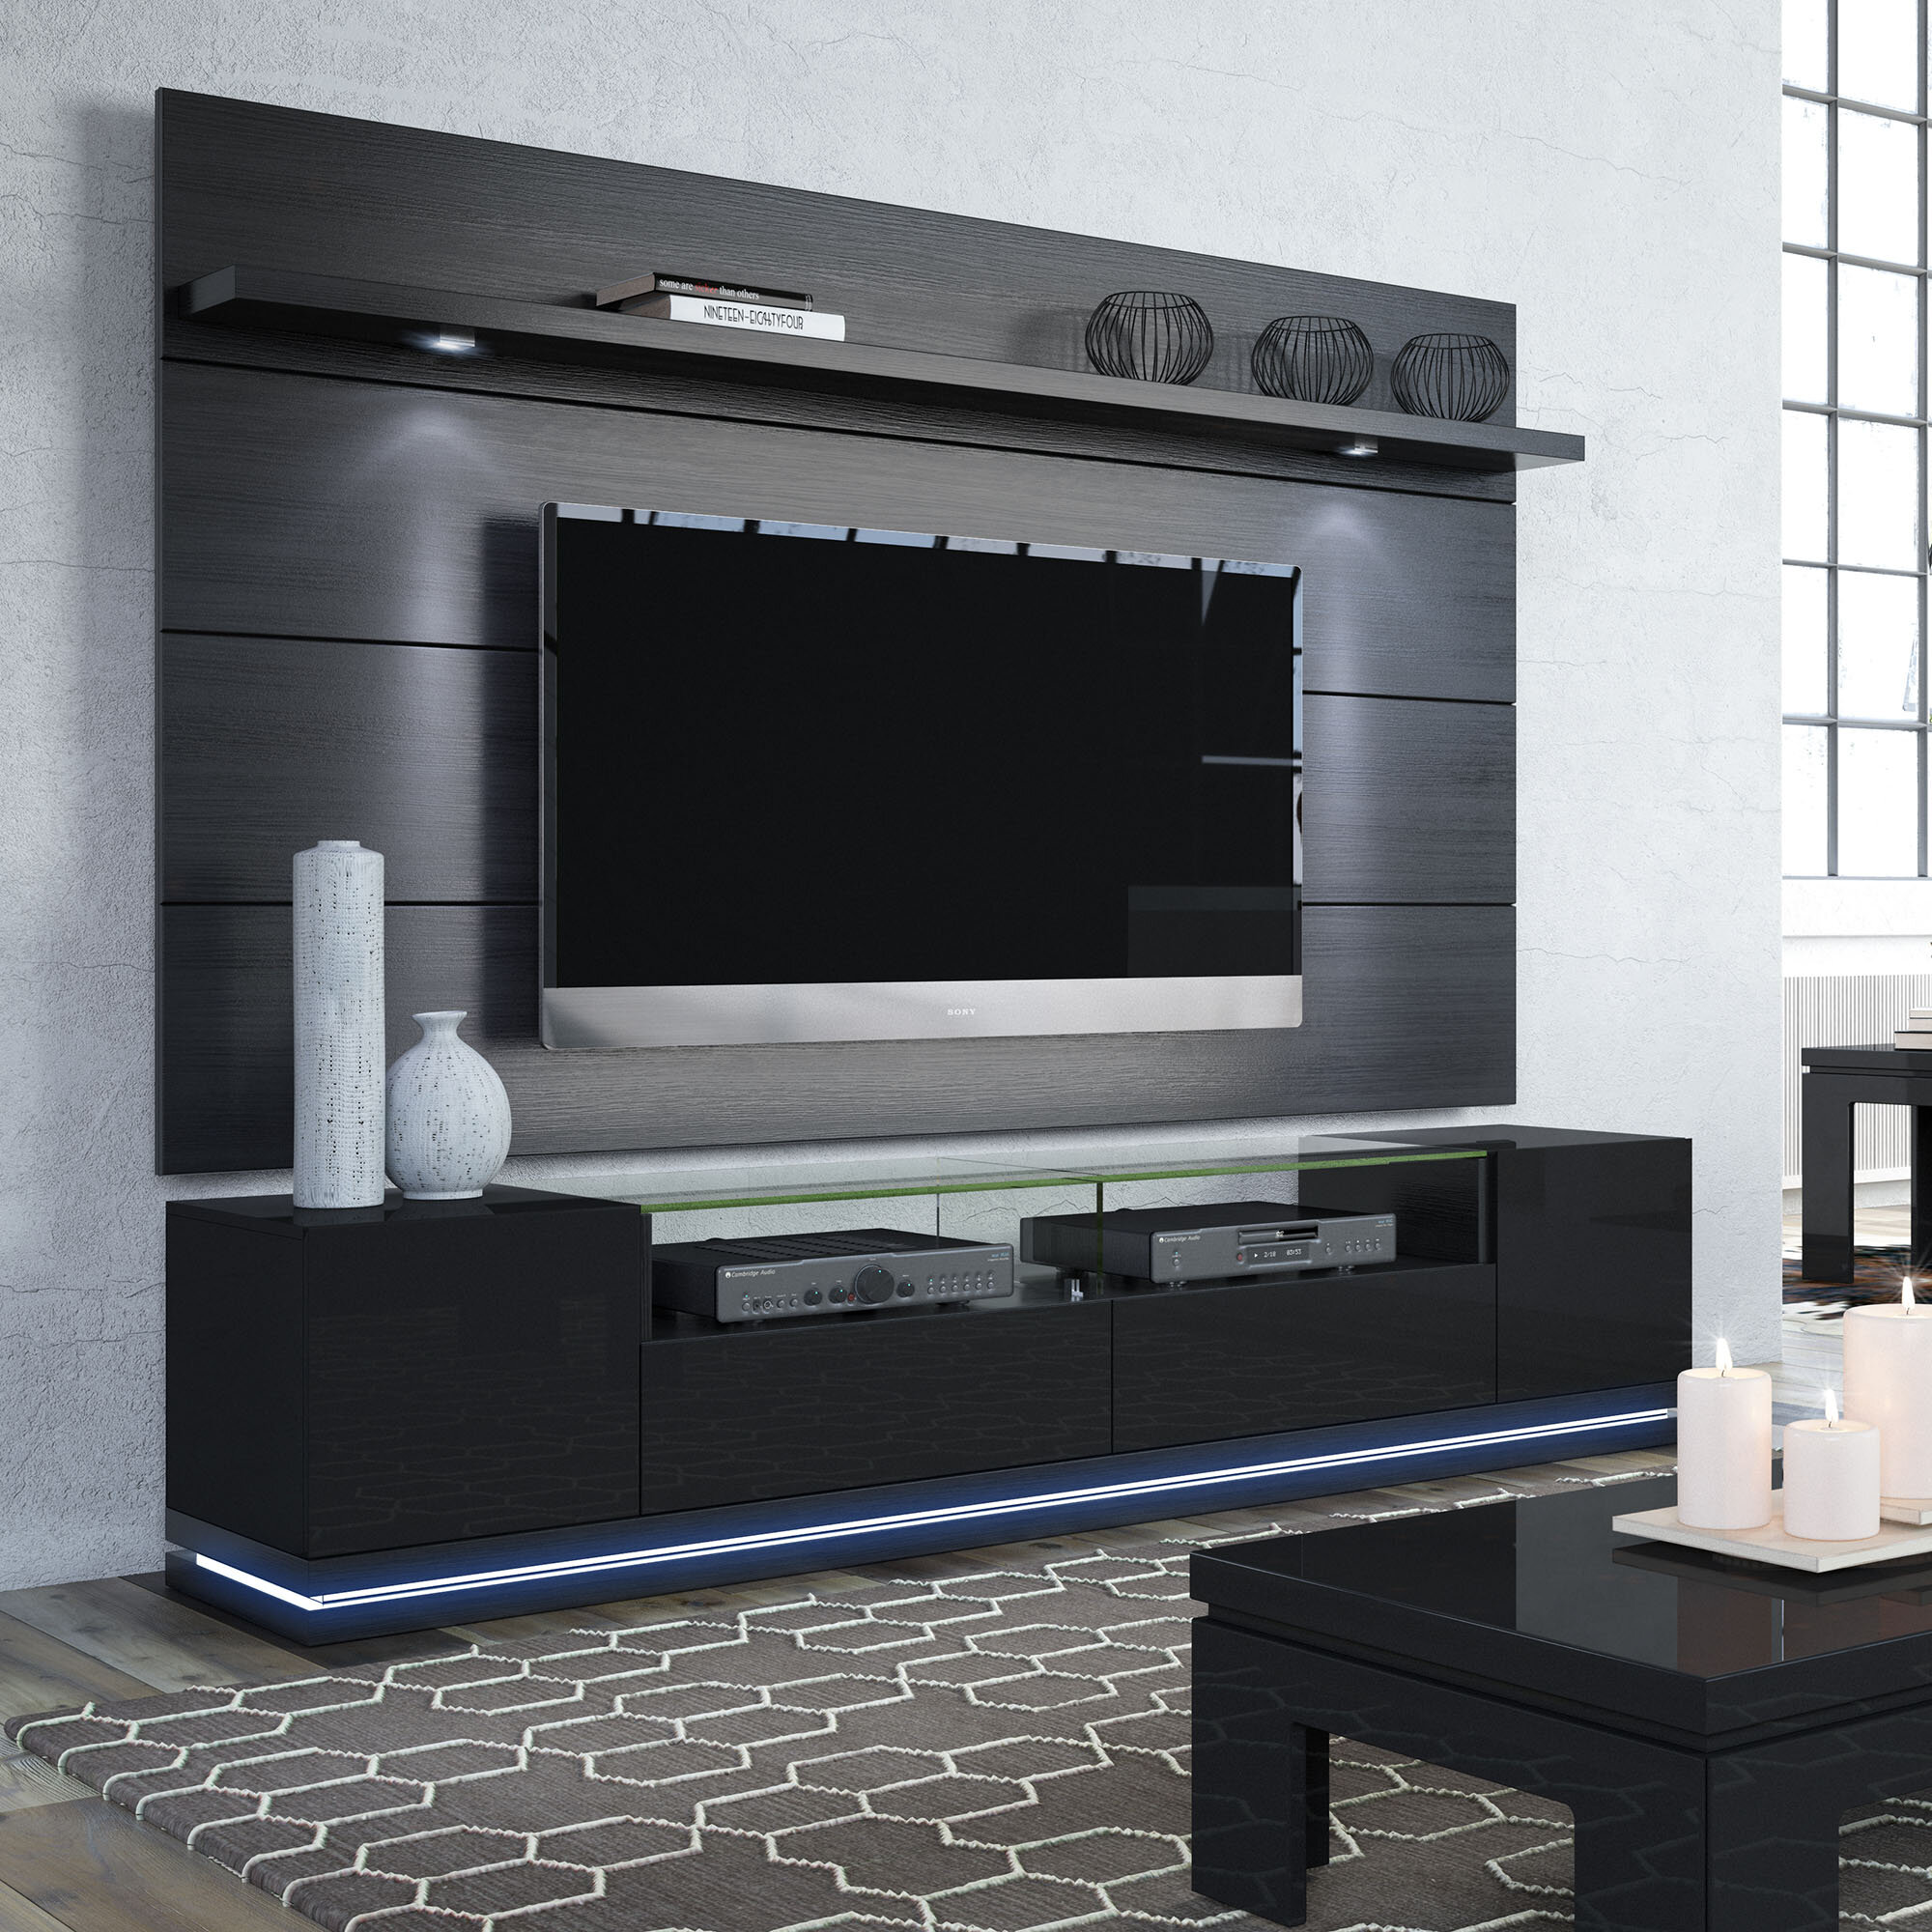 hot sale online 1040f 70f24 Danforth Floating Wall TV Stand for TVs up to 78